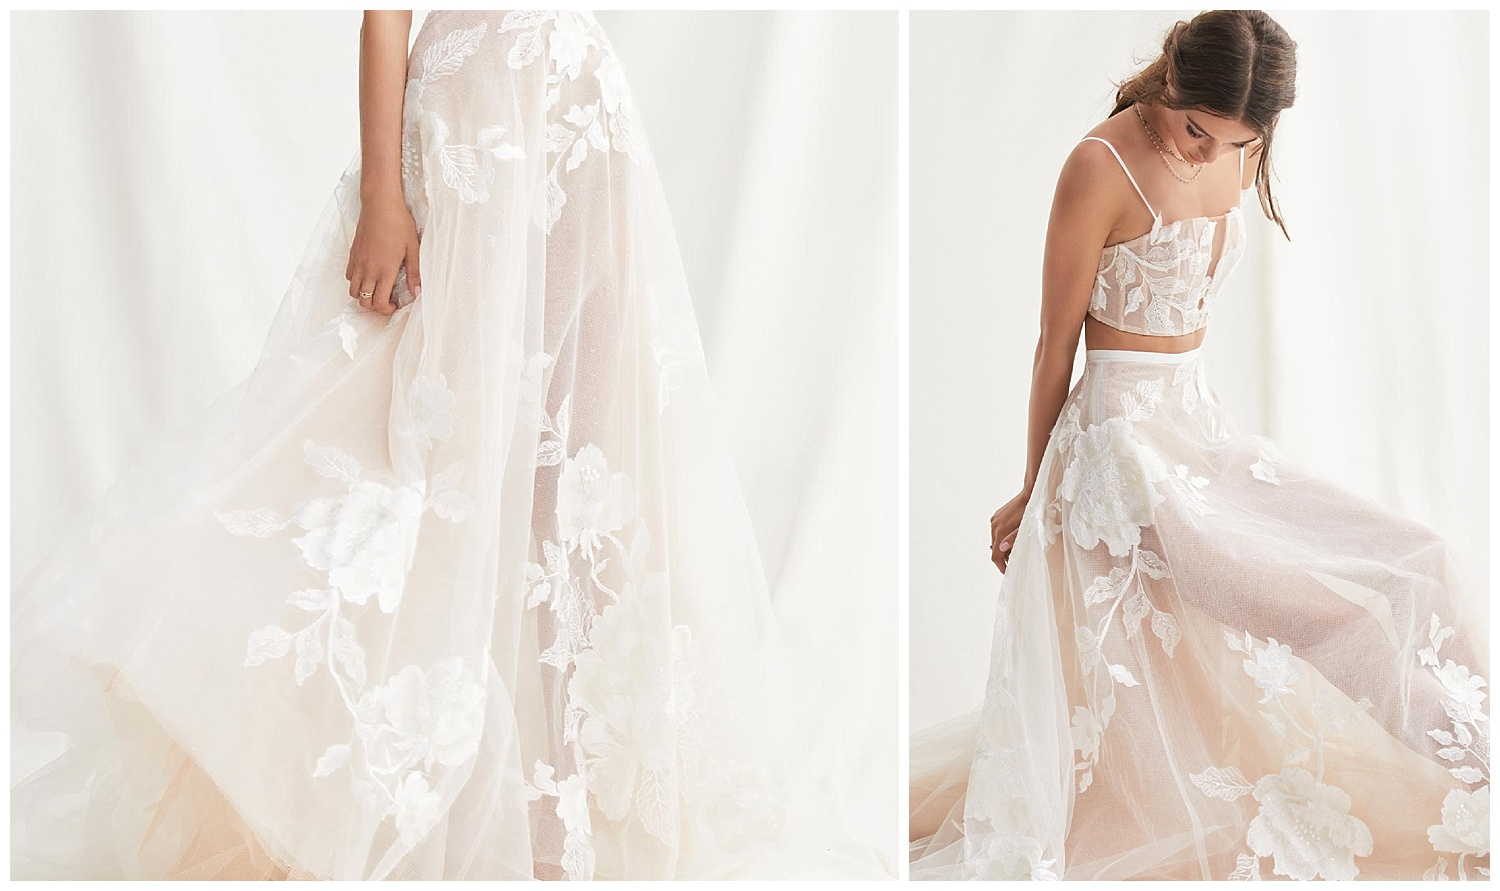 These large, oversized appliqués are place over what is a plain tulle skirt. Instant transformation!